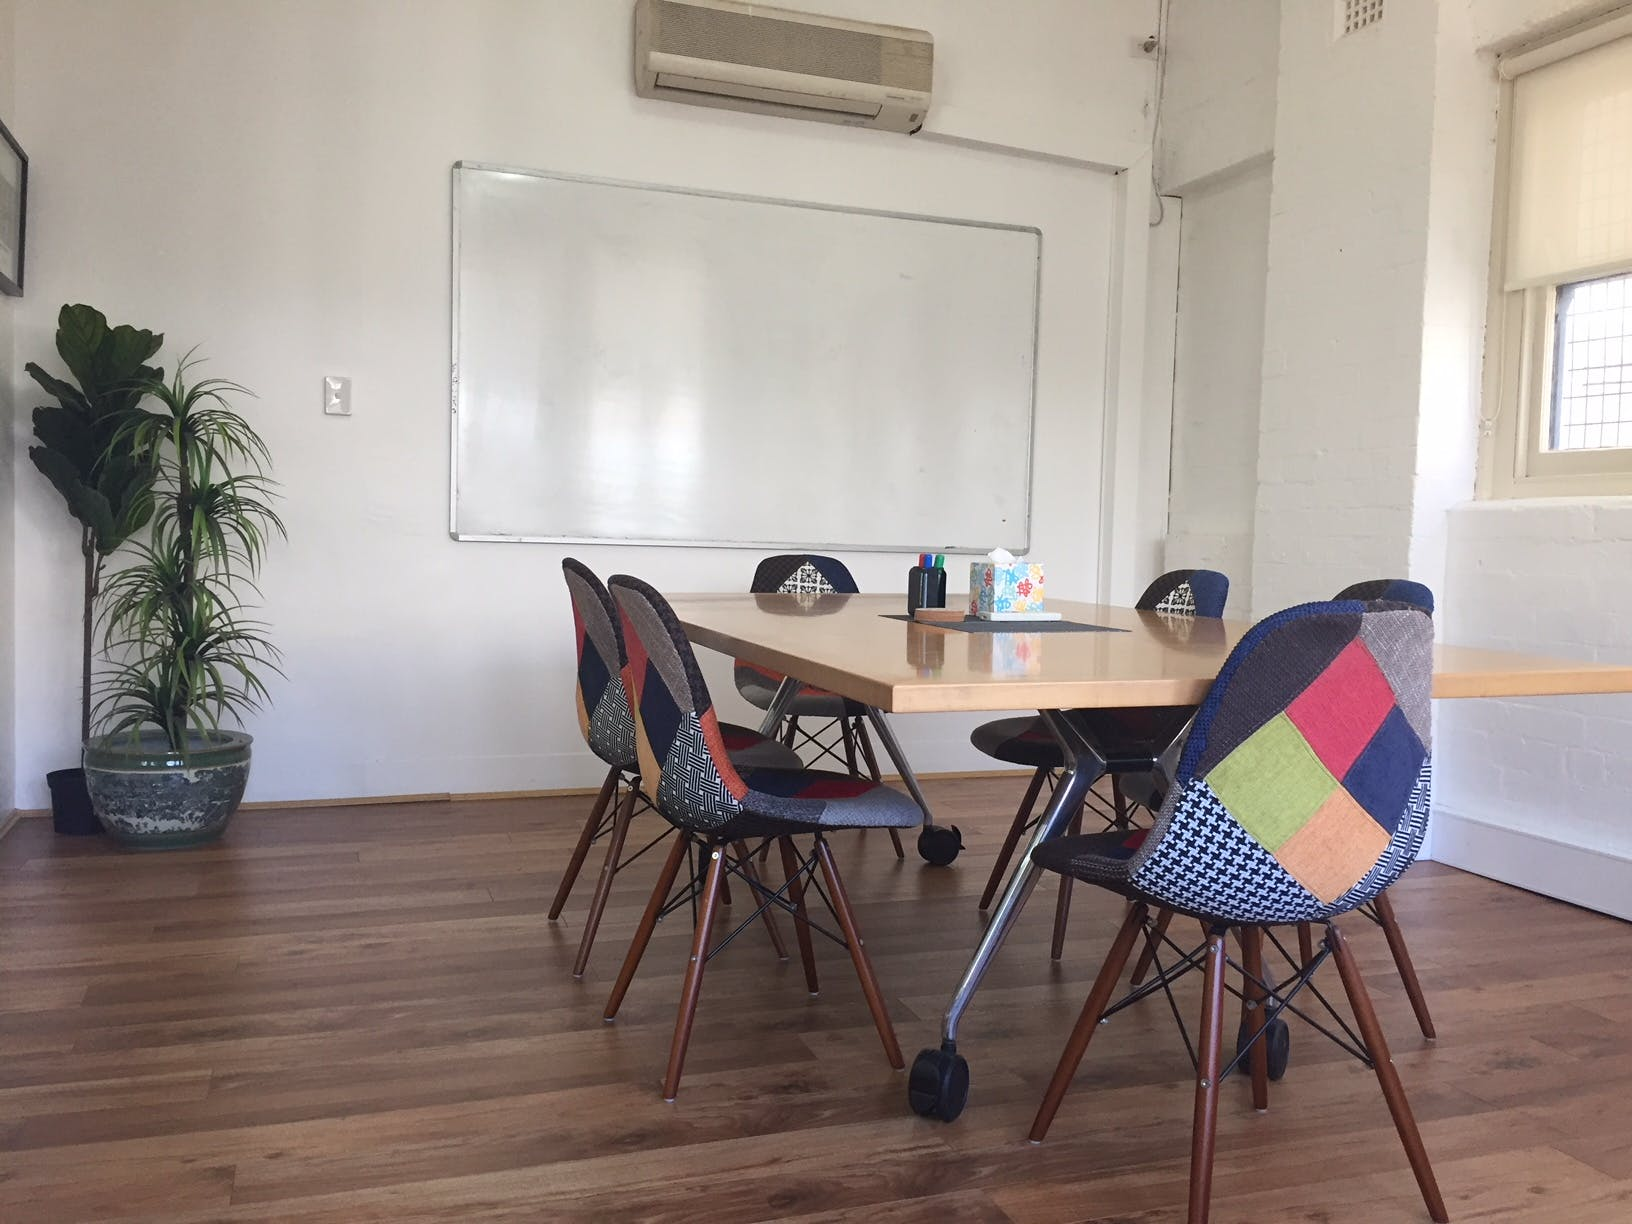 Meeting room at Zadro Agency, image 1